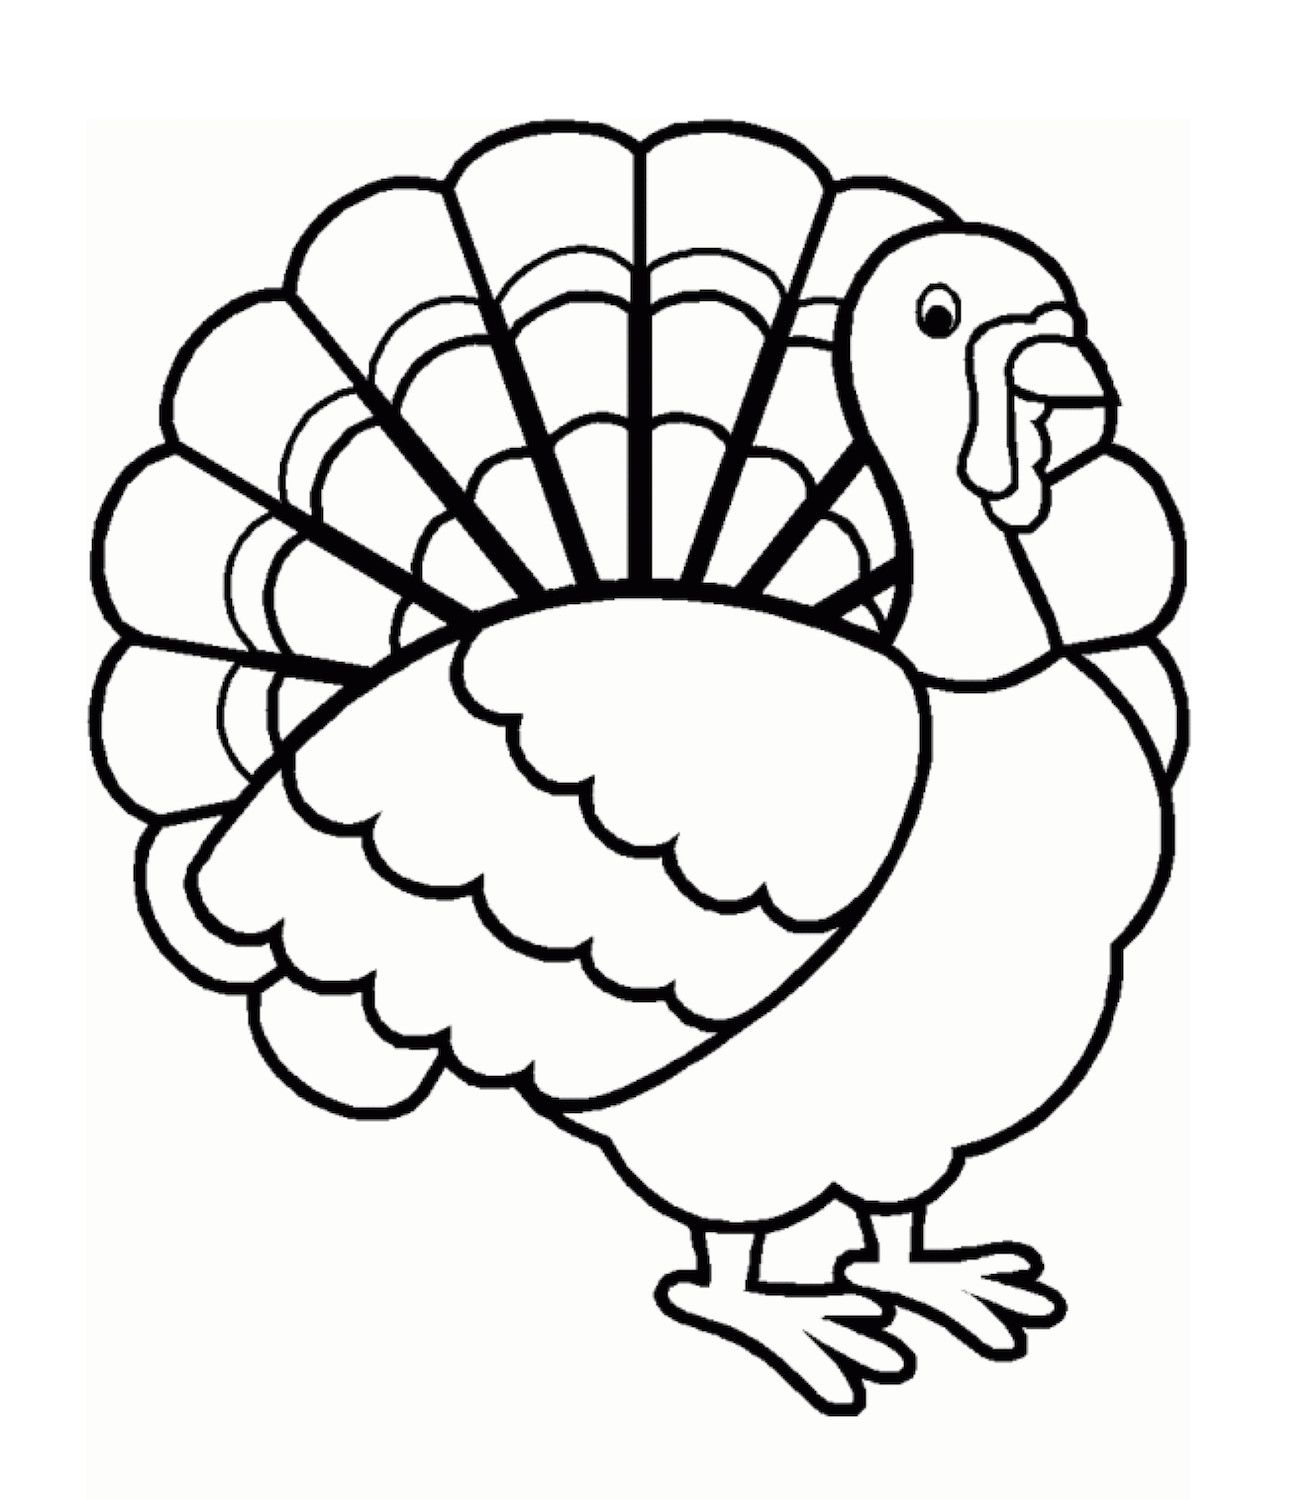 30 Best Of Thanksgiving Turkey Coloring Pages In 2020 Turkey